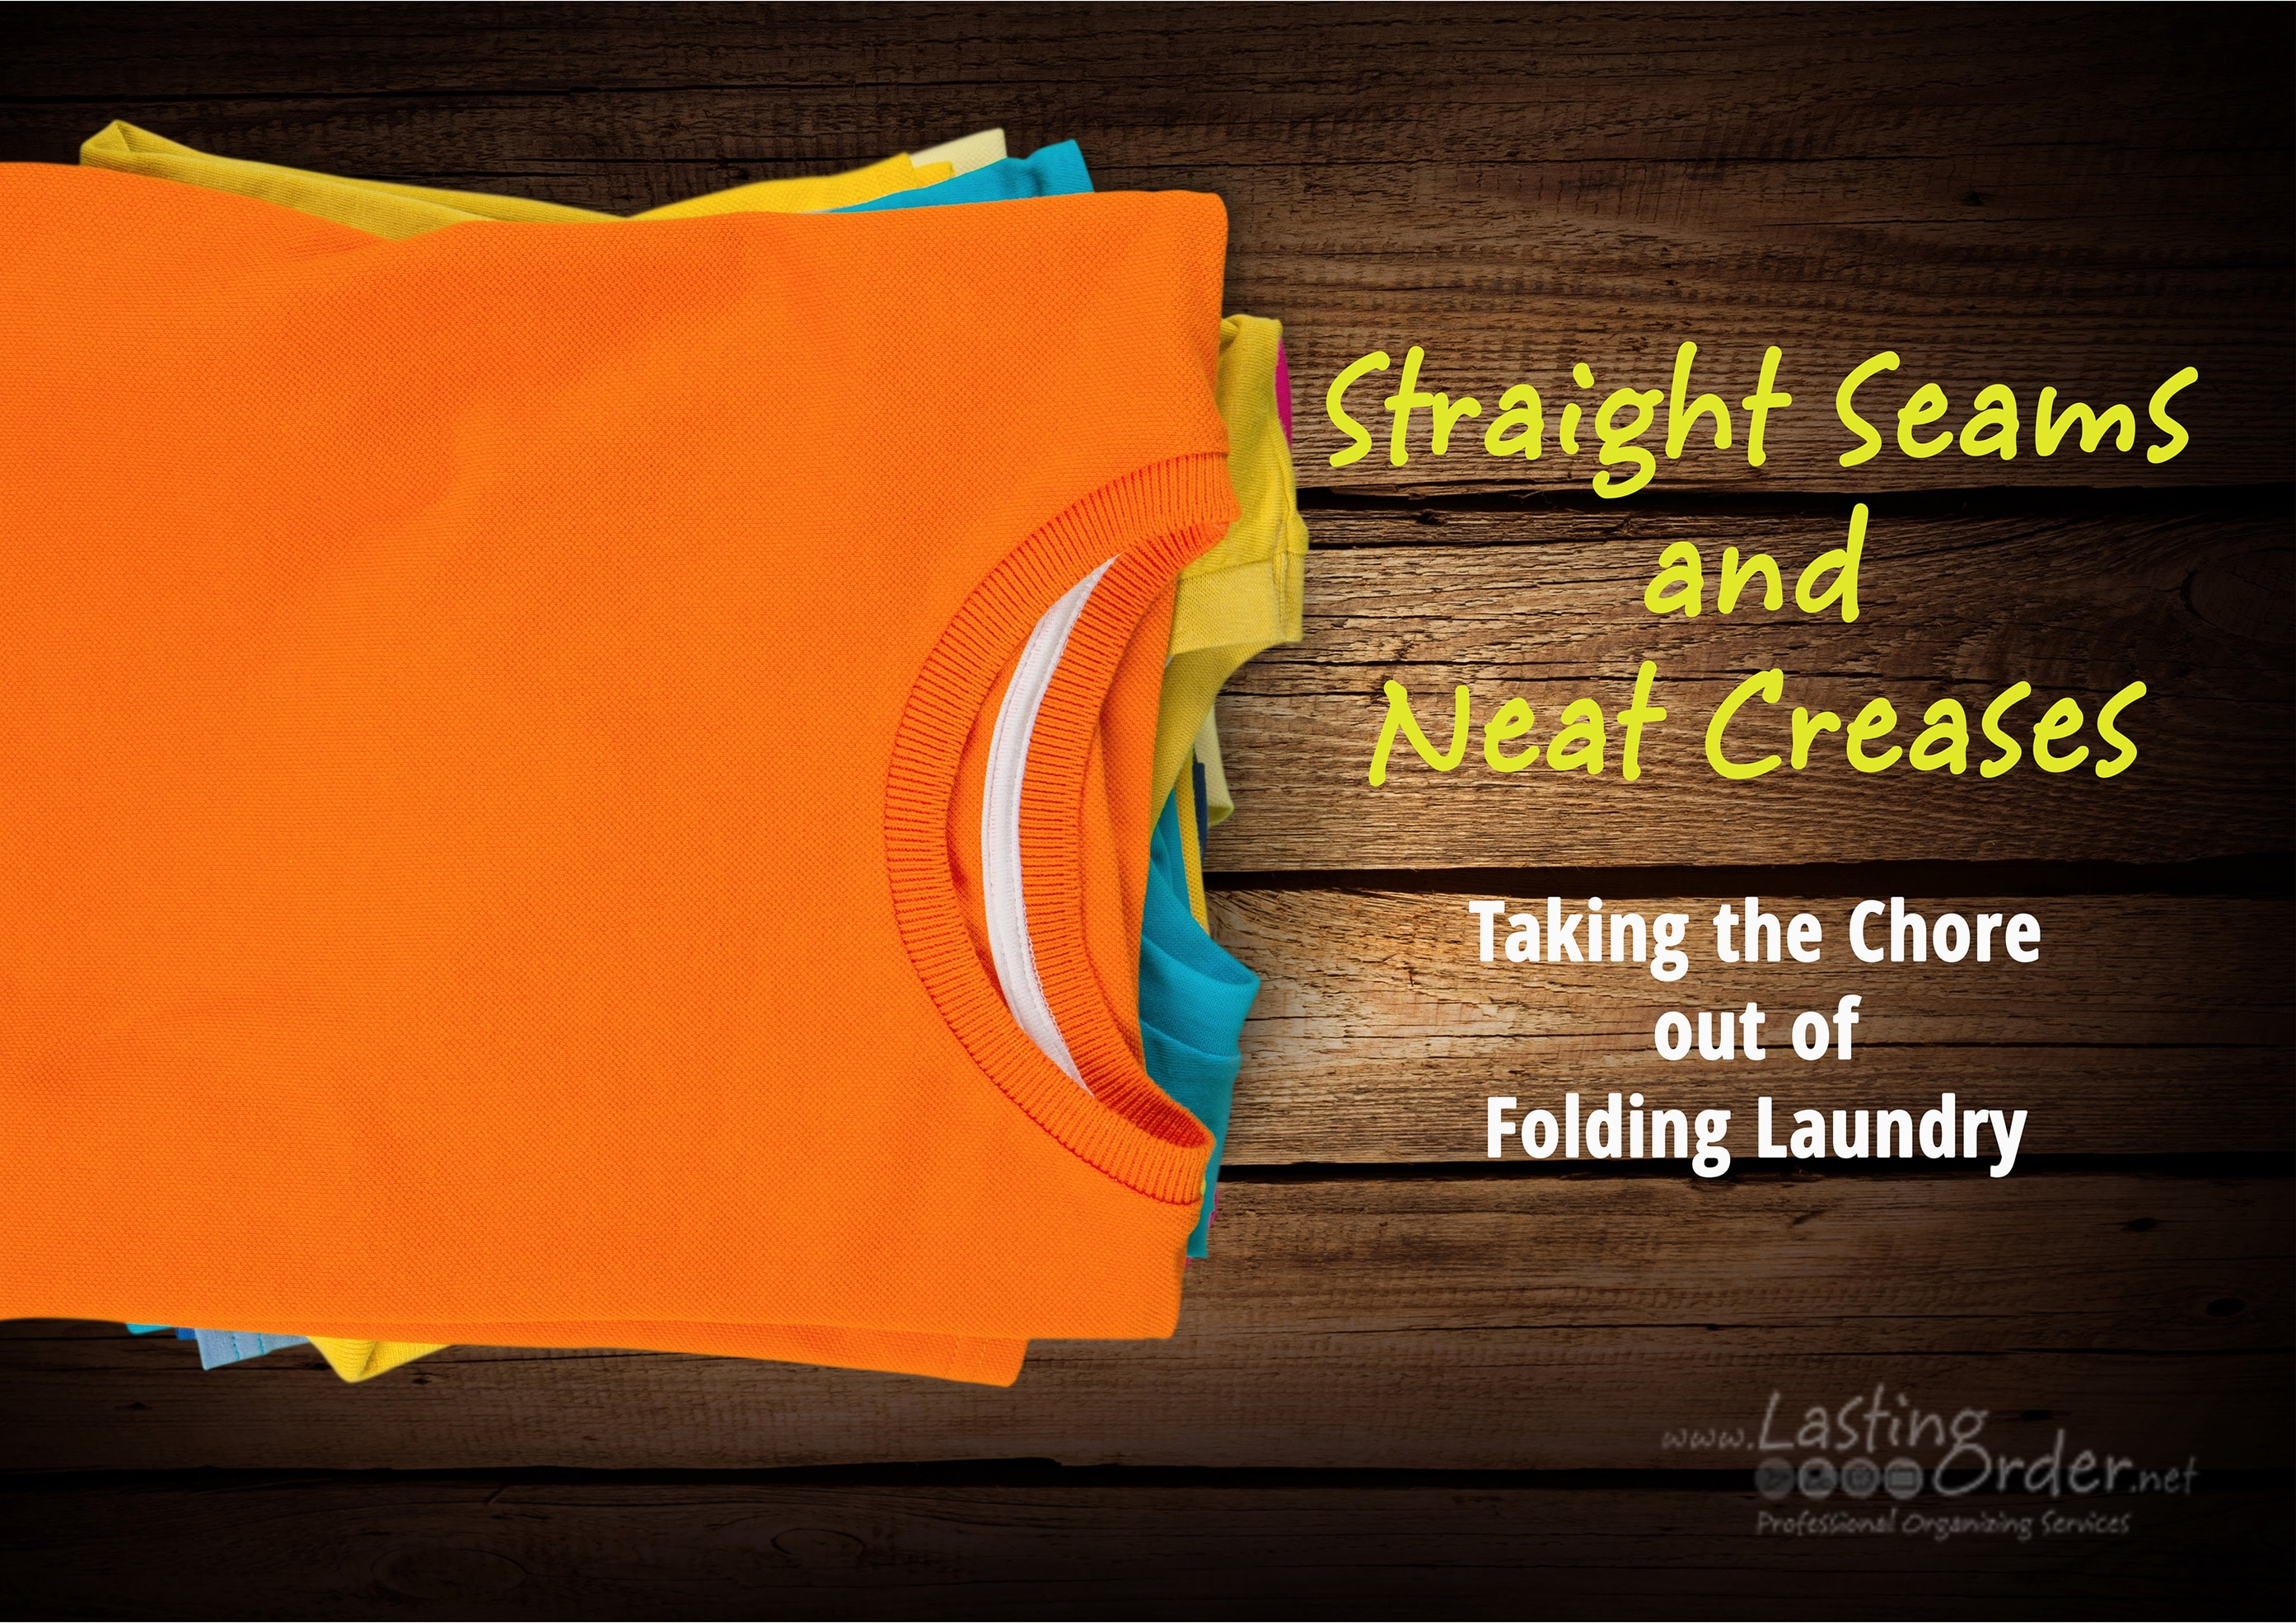 Straight Seams and Neat Creases: Taking the Chore out of Folding Laundry